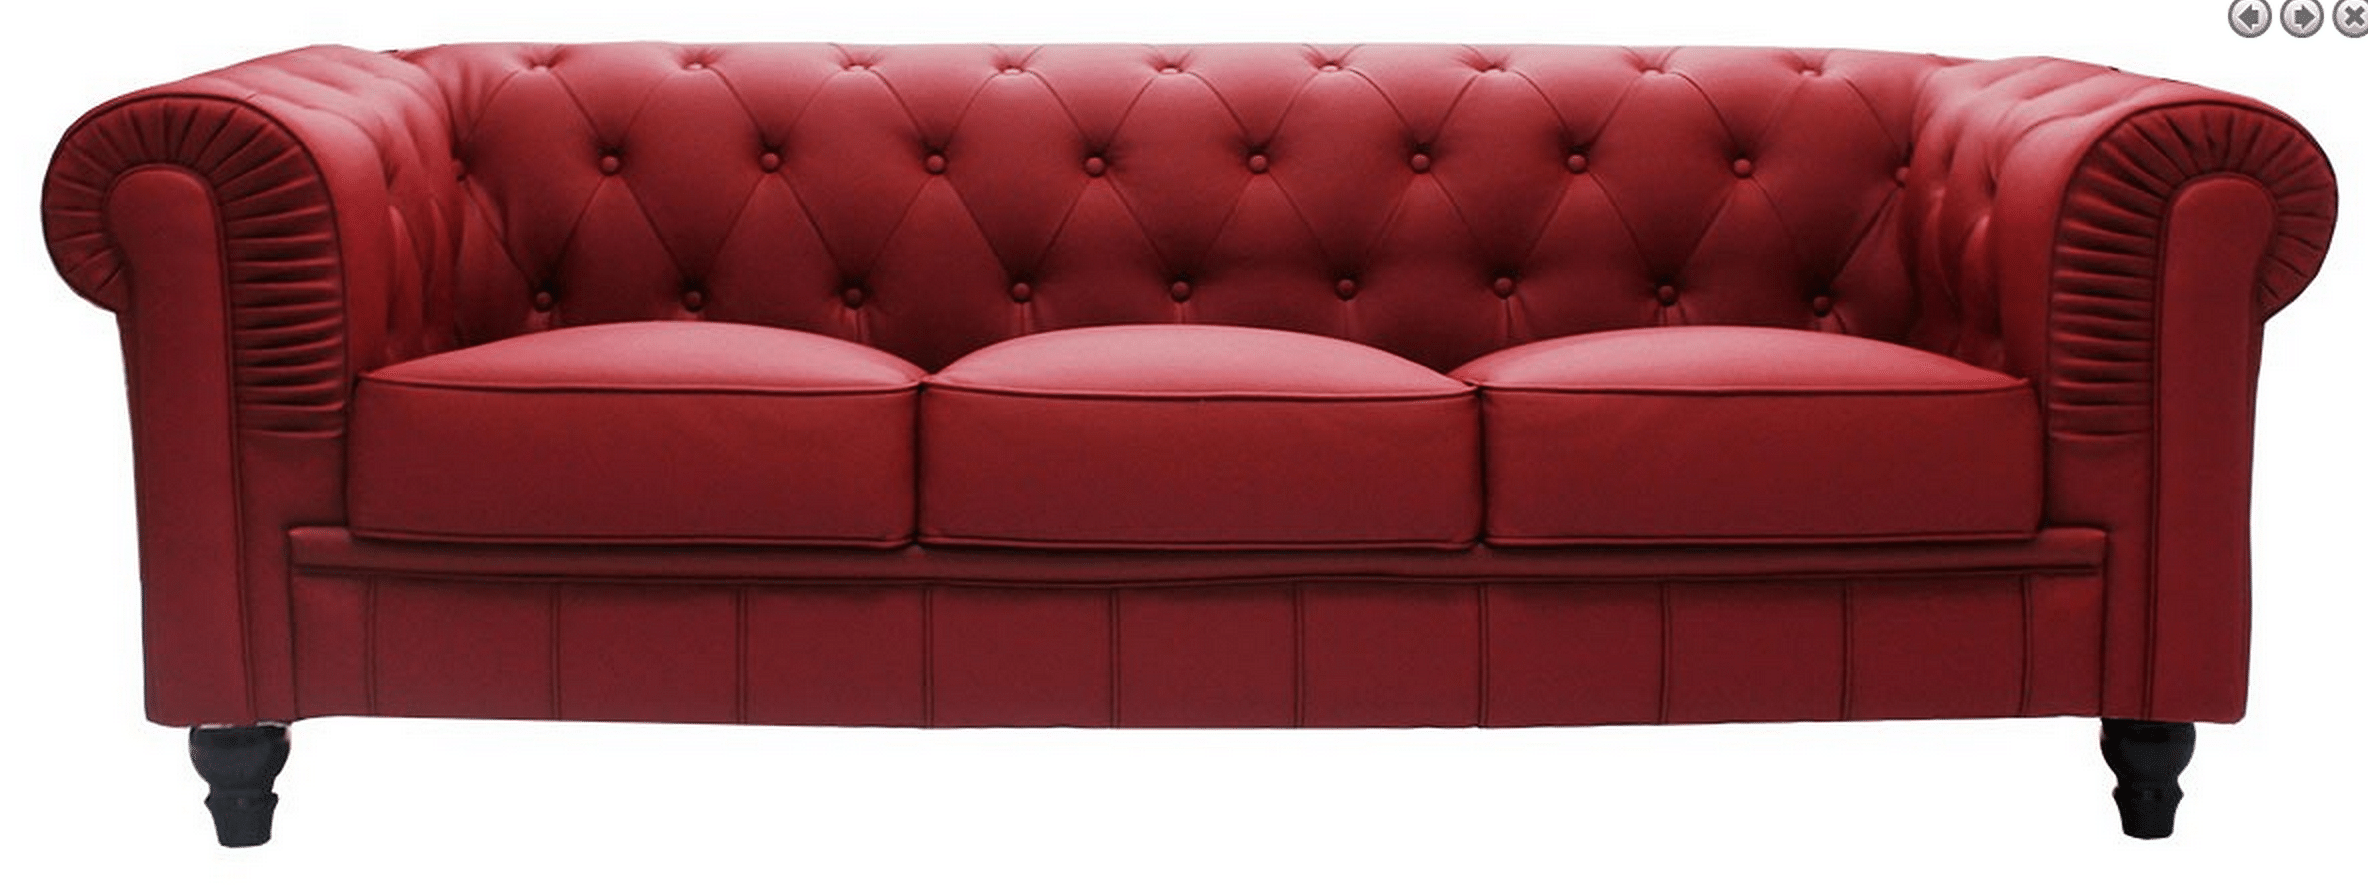 10 Sofas Under 1000 That You Can Buy Online